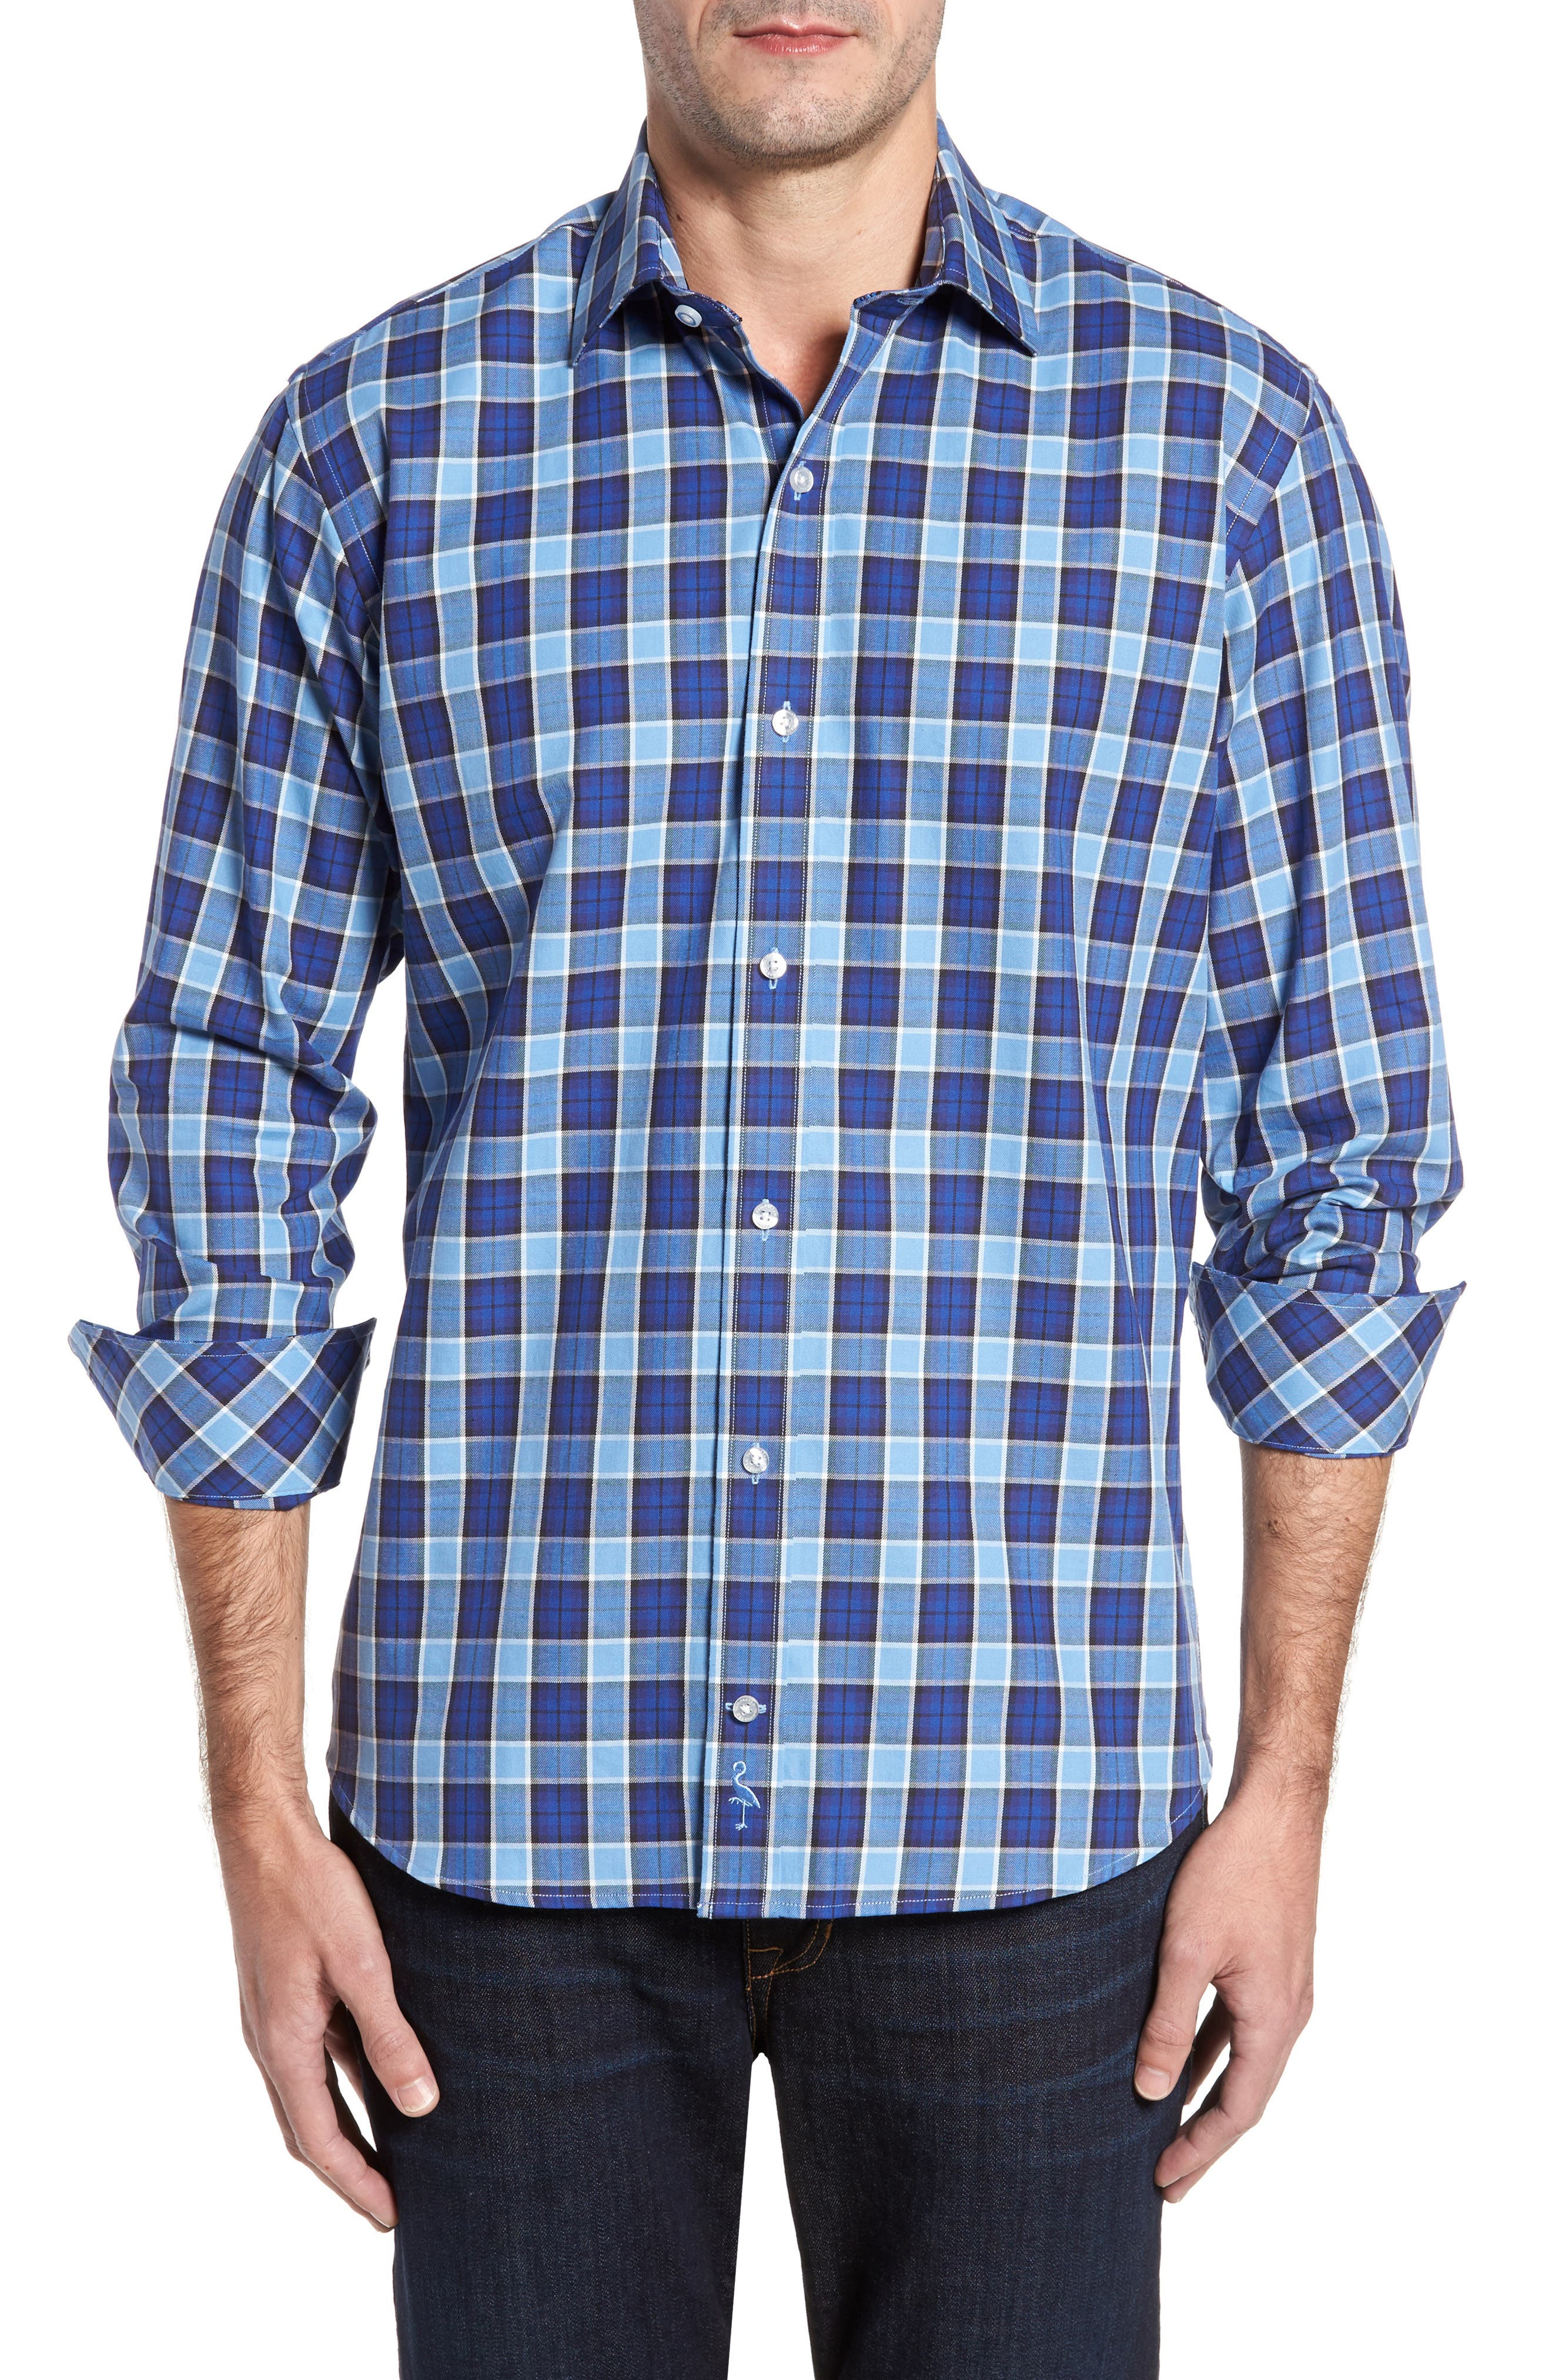 Alternate Image 1 Selected - TailorByrd Boothville Check Sport Shirt